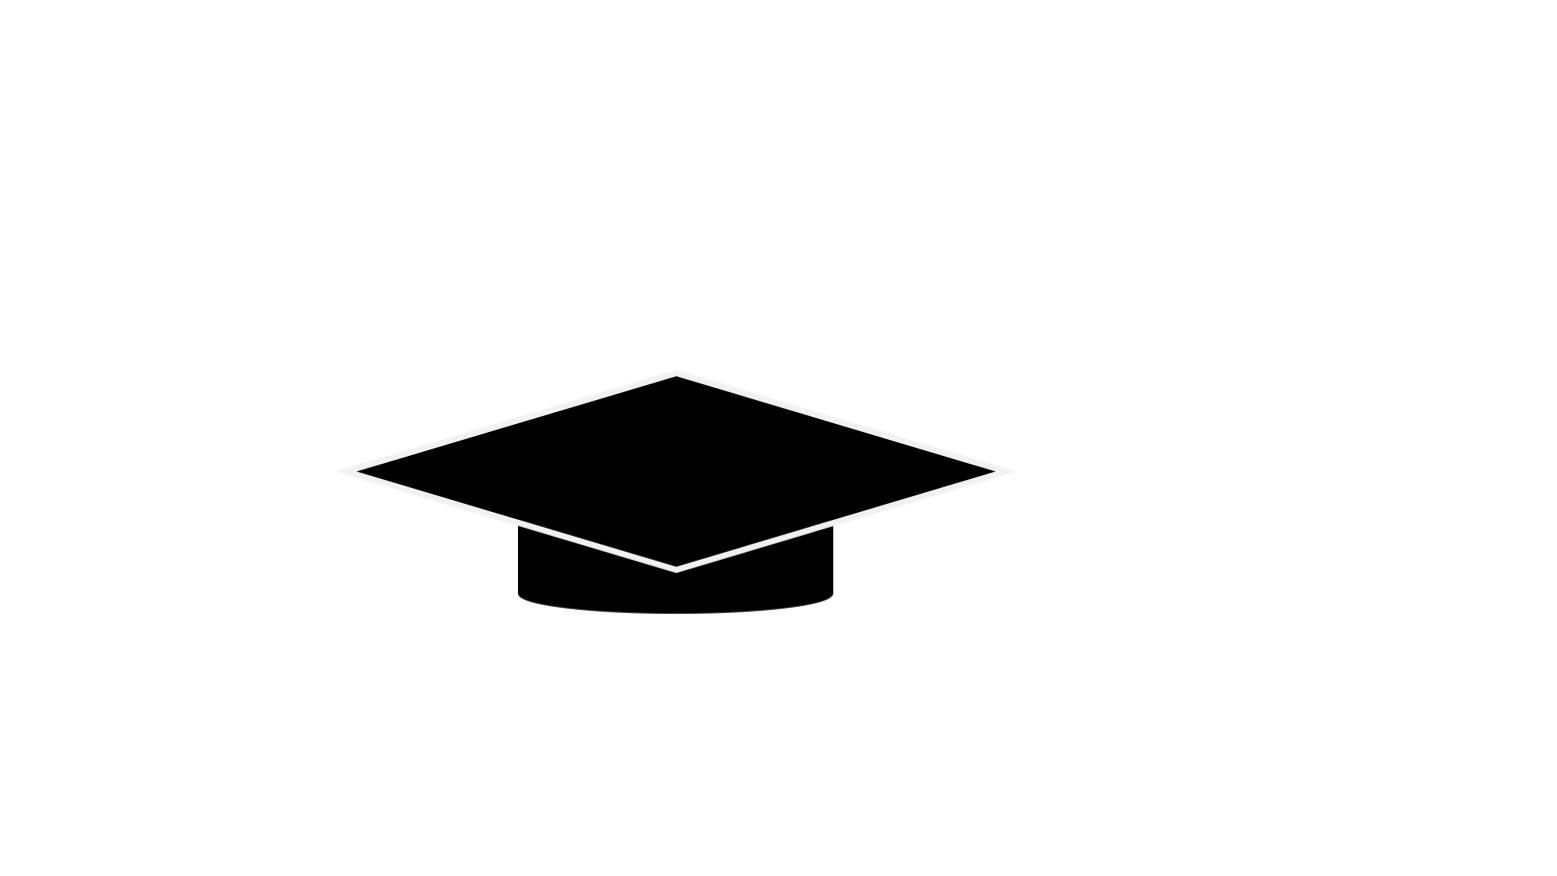 icon showing a scholar's hat to signify Australia's higher education sector